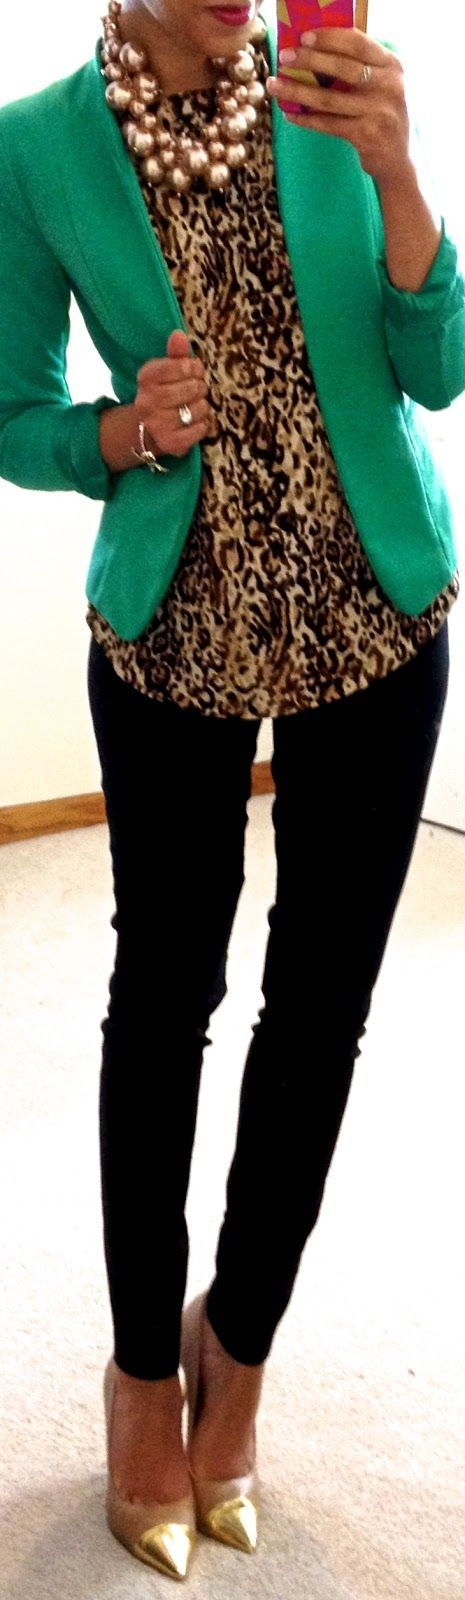 I wore this. Yesterday. Literally. I have the same pants and shoes. Glad to know I don't look too ridiculous.